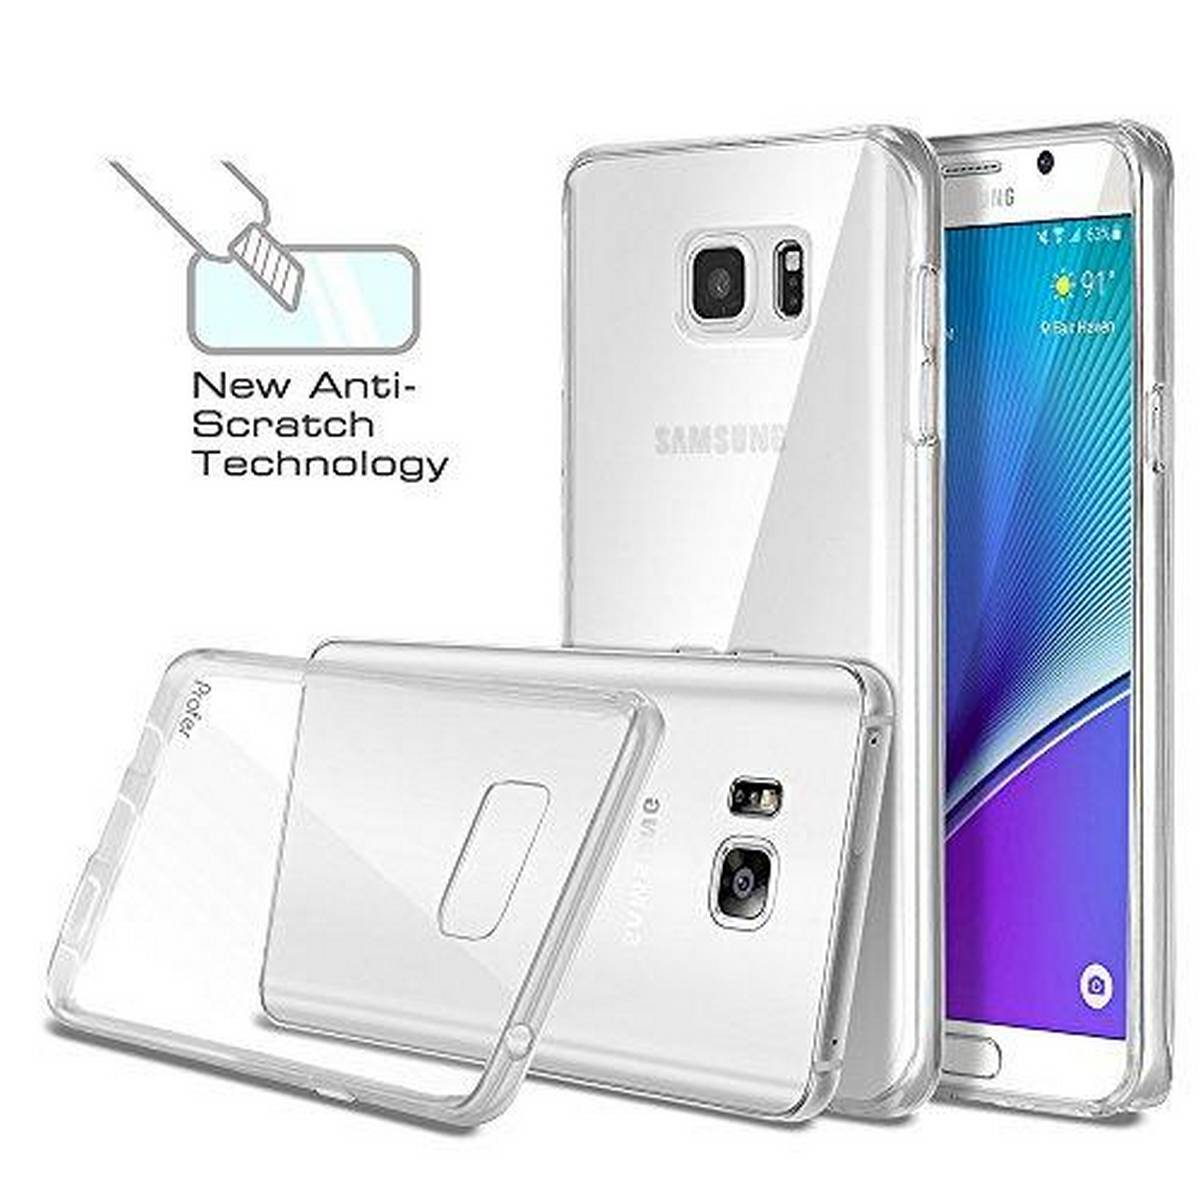 Samsung Galaxy Note 5 Flexible Case Soft Slim Jelly Transparent Clear TPU Cover